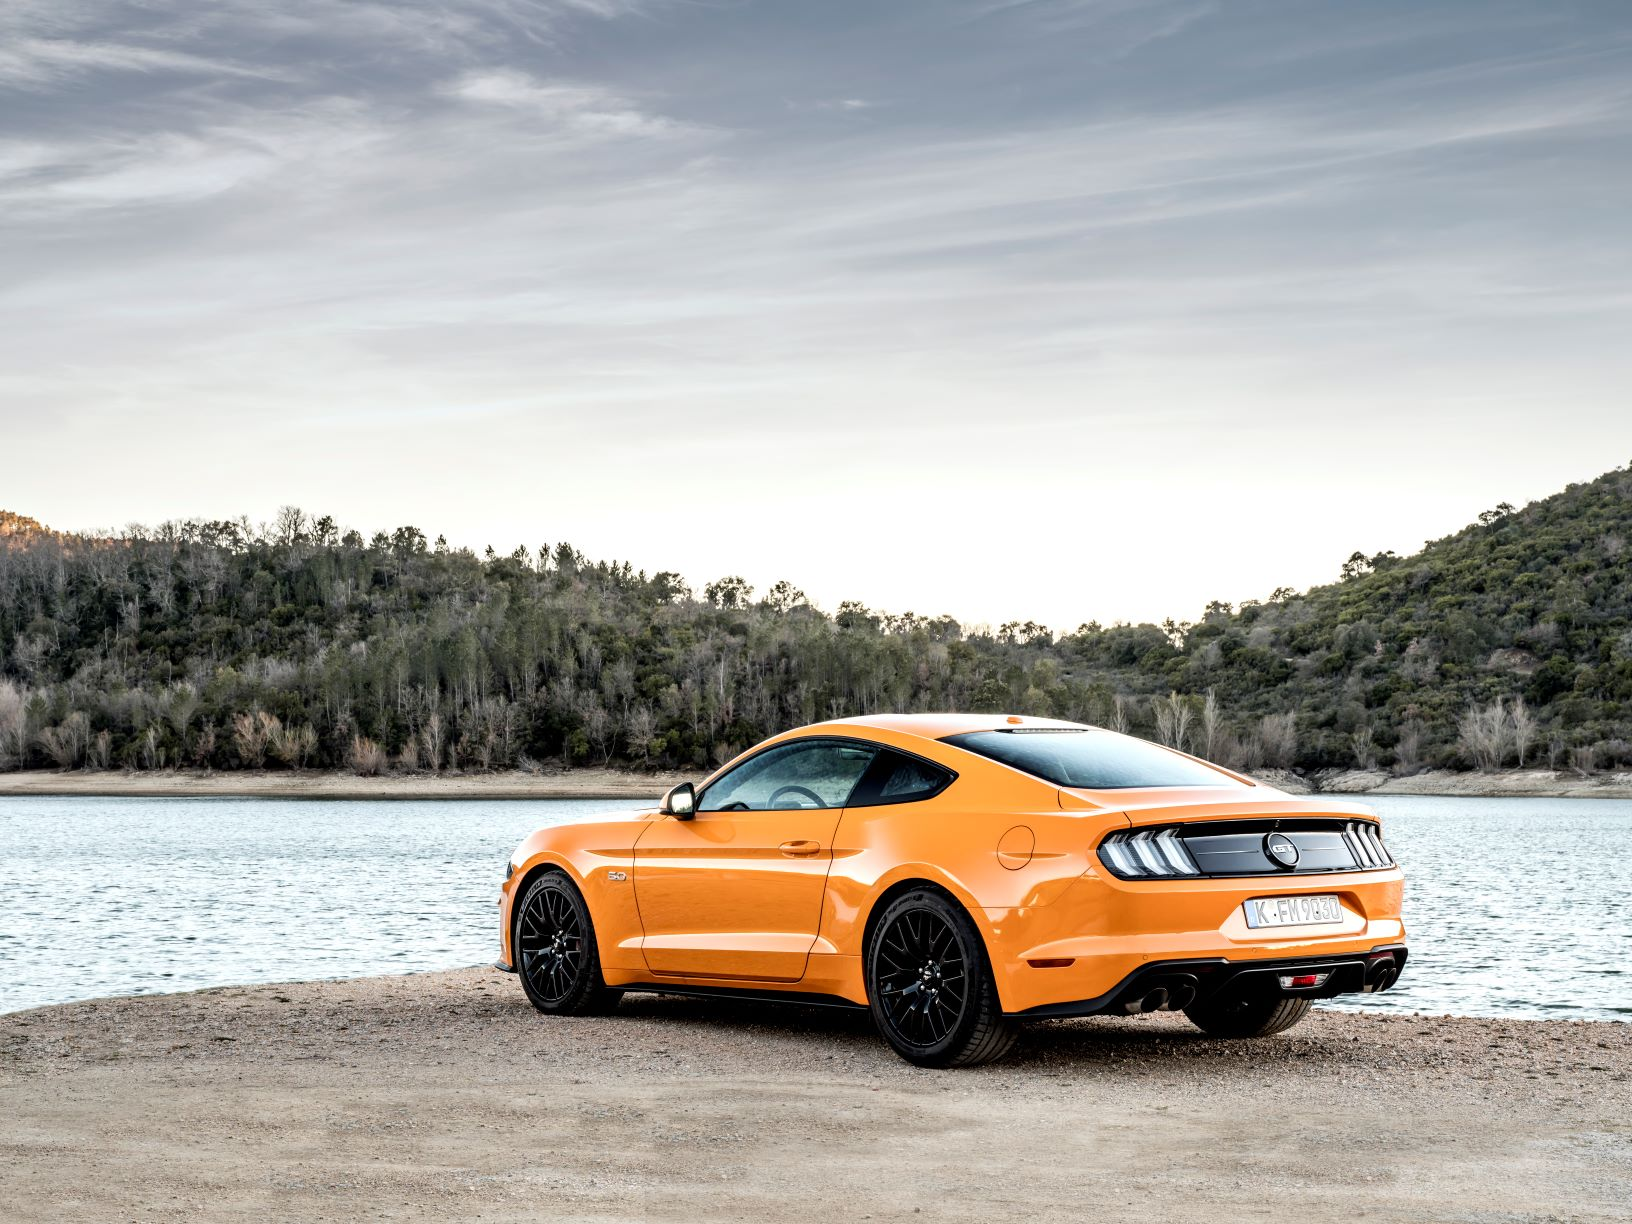 Migliori auto sportive low cost Ford Mustang gt 2